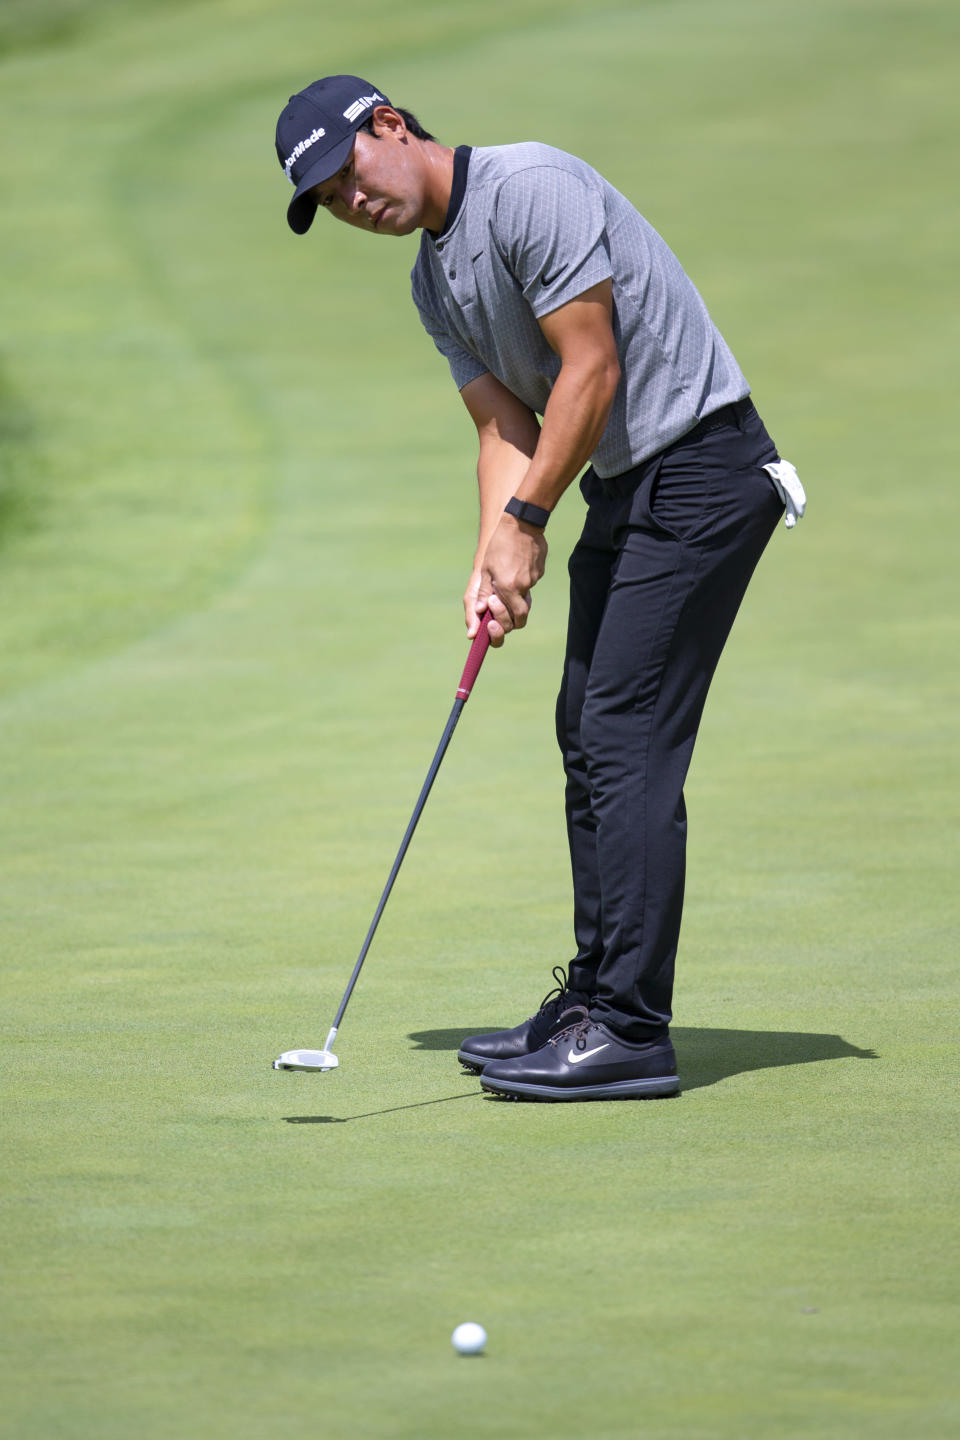 Xinjun Zhang putts on the ninth hole during the first round of the 3M Open golf tournament in Blaine, Minn., Thursday, July 23, 2020. (AP Photo/Andy Clayton- King)